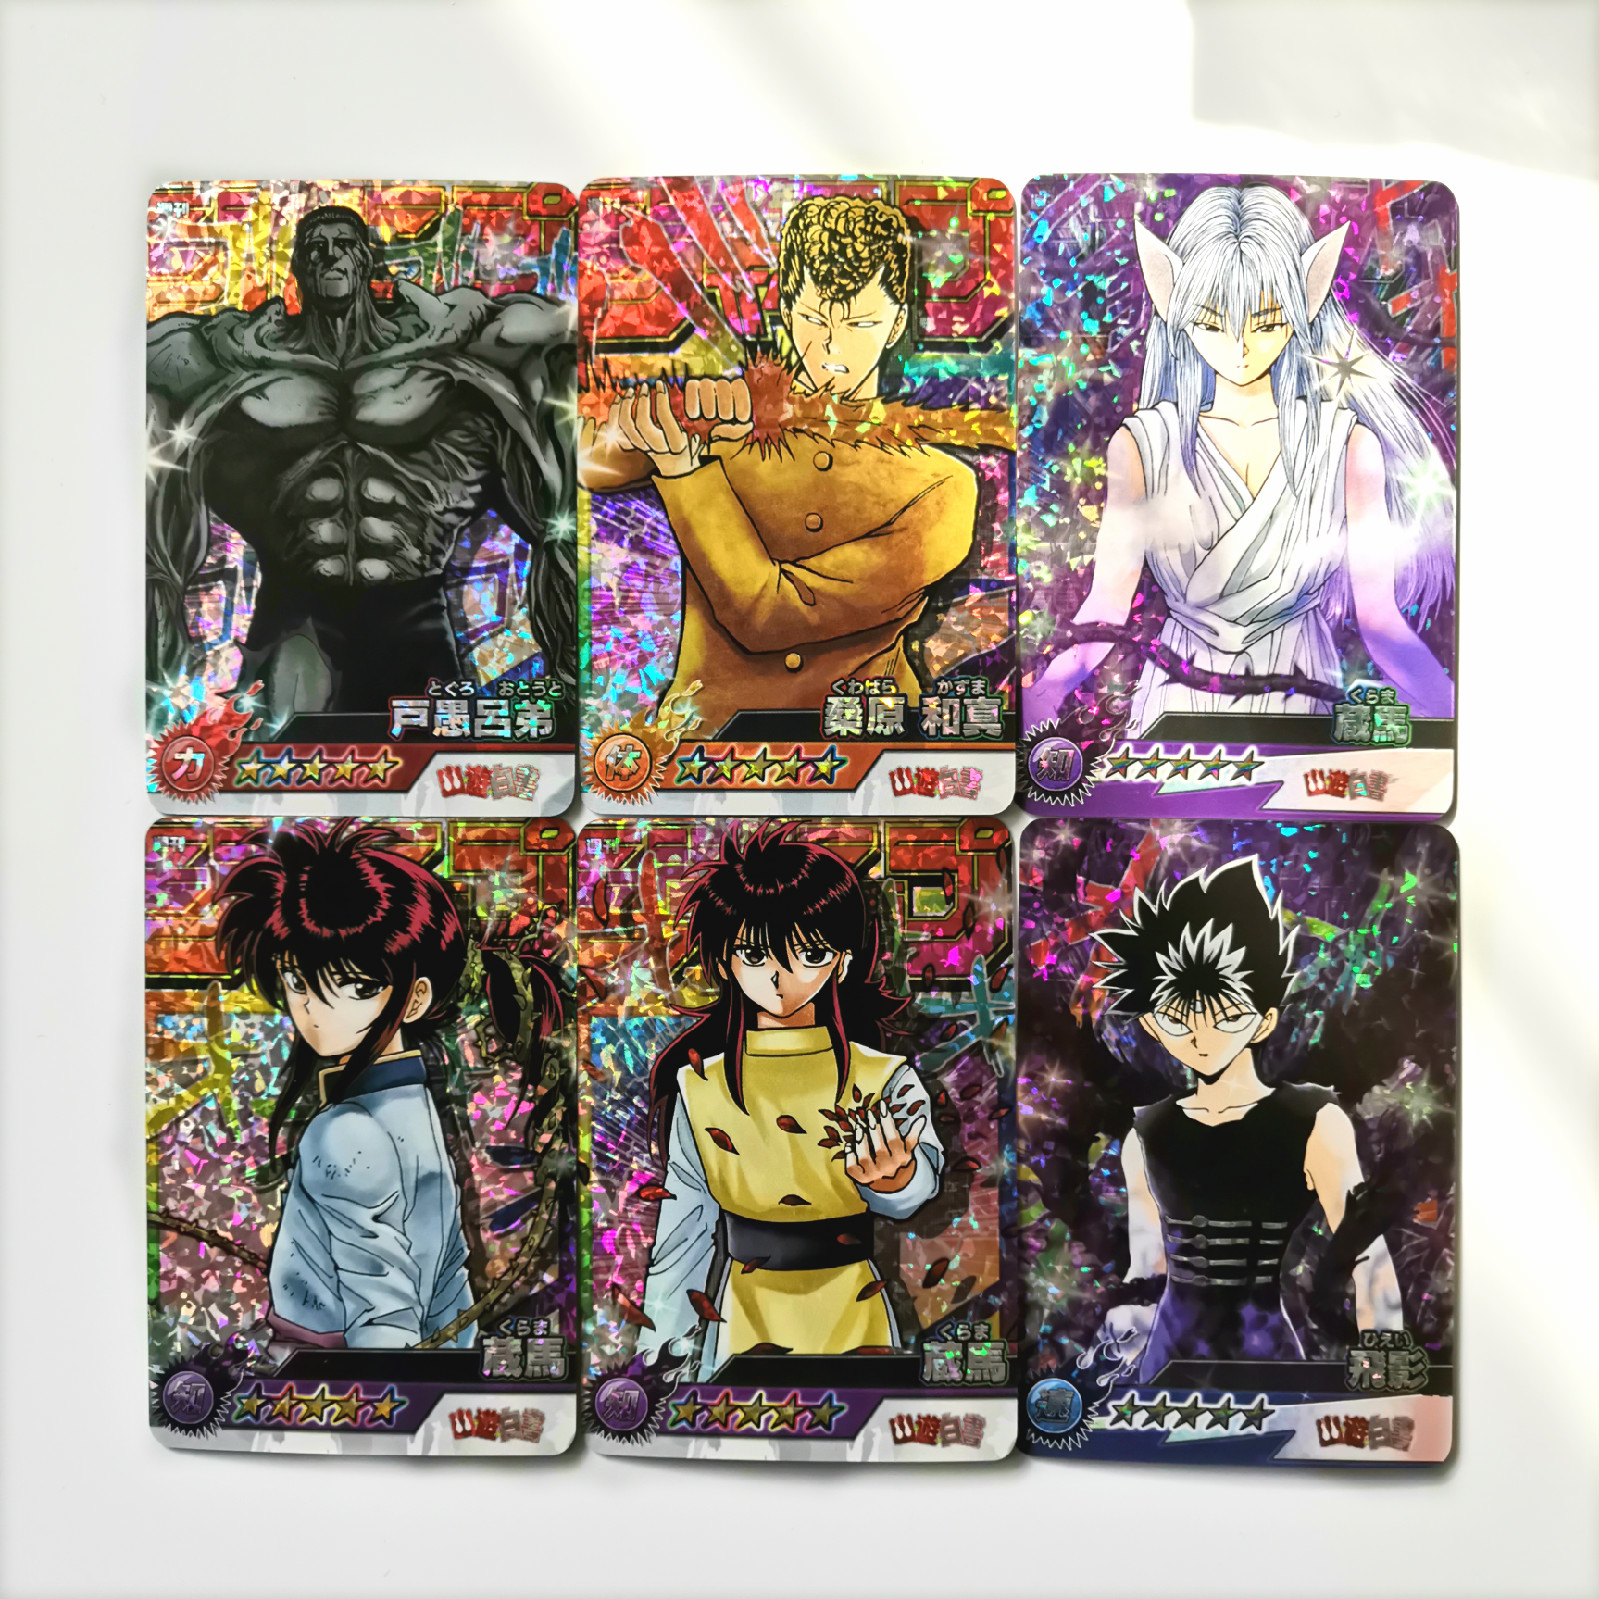 18pcs/set JUMP YuYu Hakusho Fifth Bomb Toys Hobbies Hobby Collectibles Game Collection Anime Cards